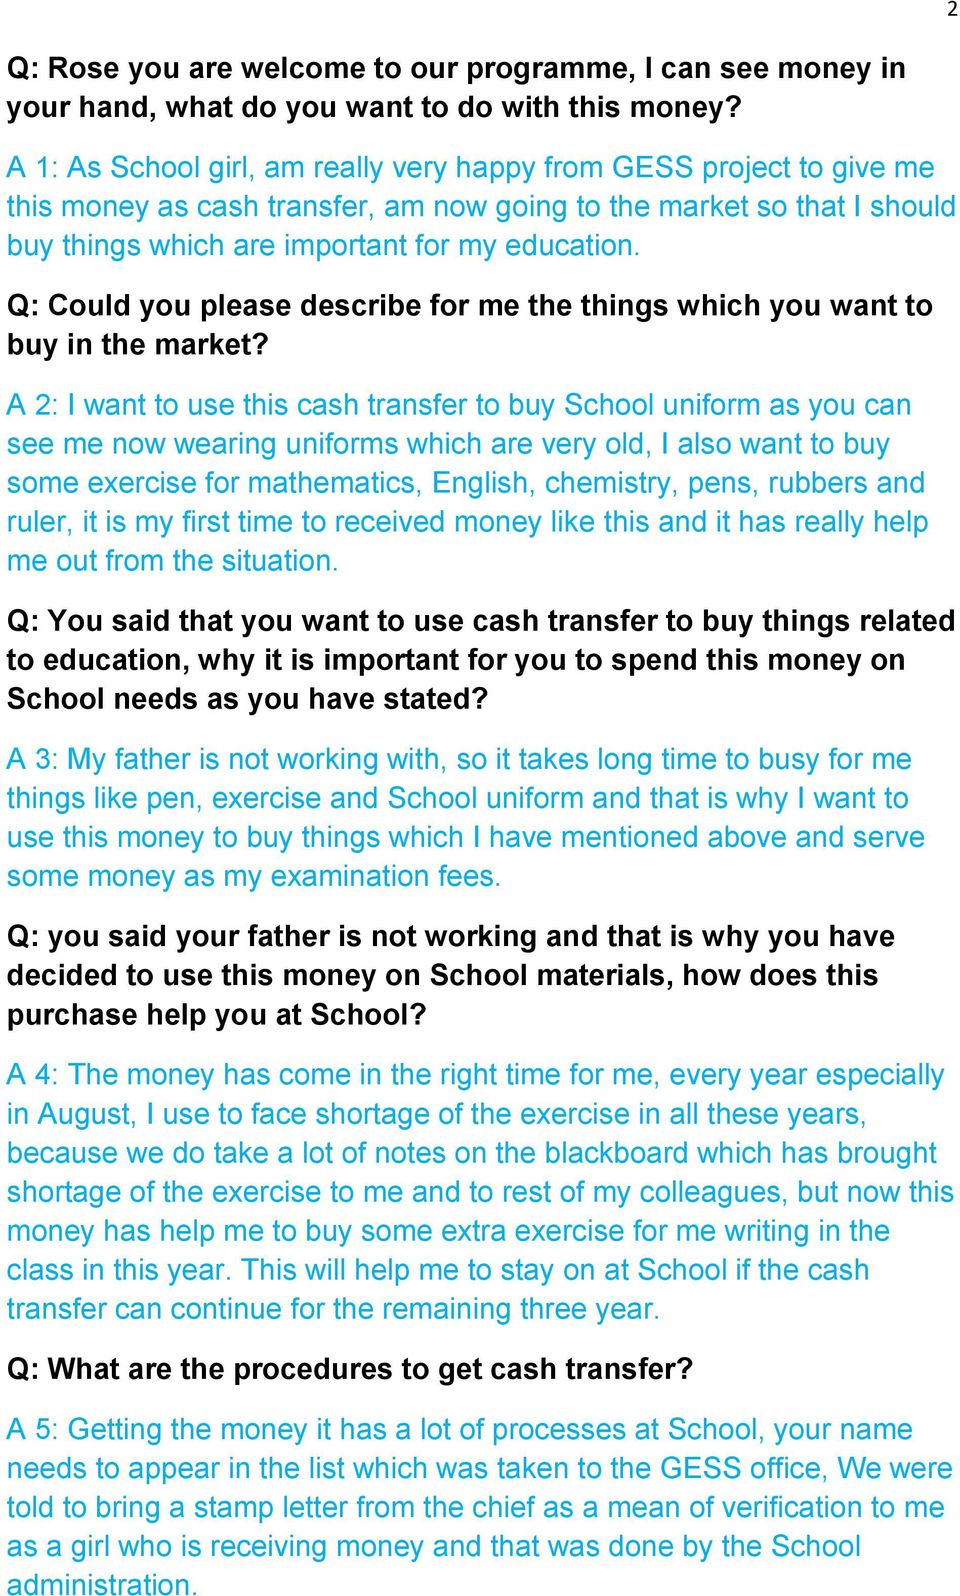 Q: Could you please describe for me the things which you want to buy in the market?